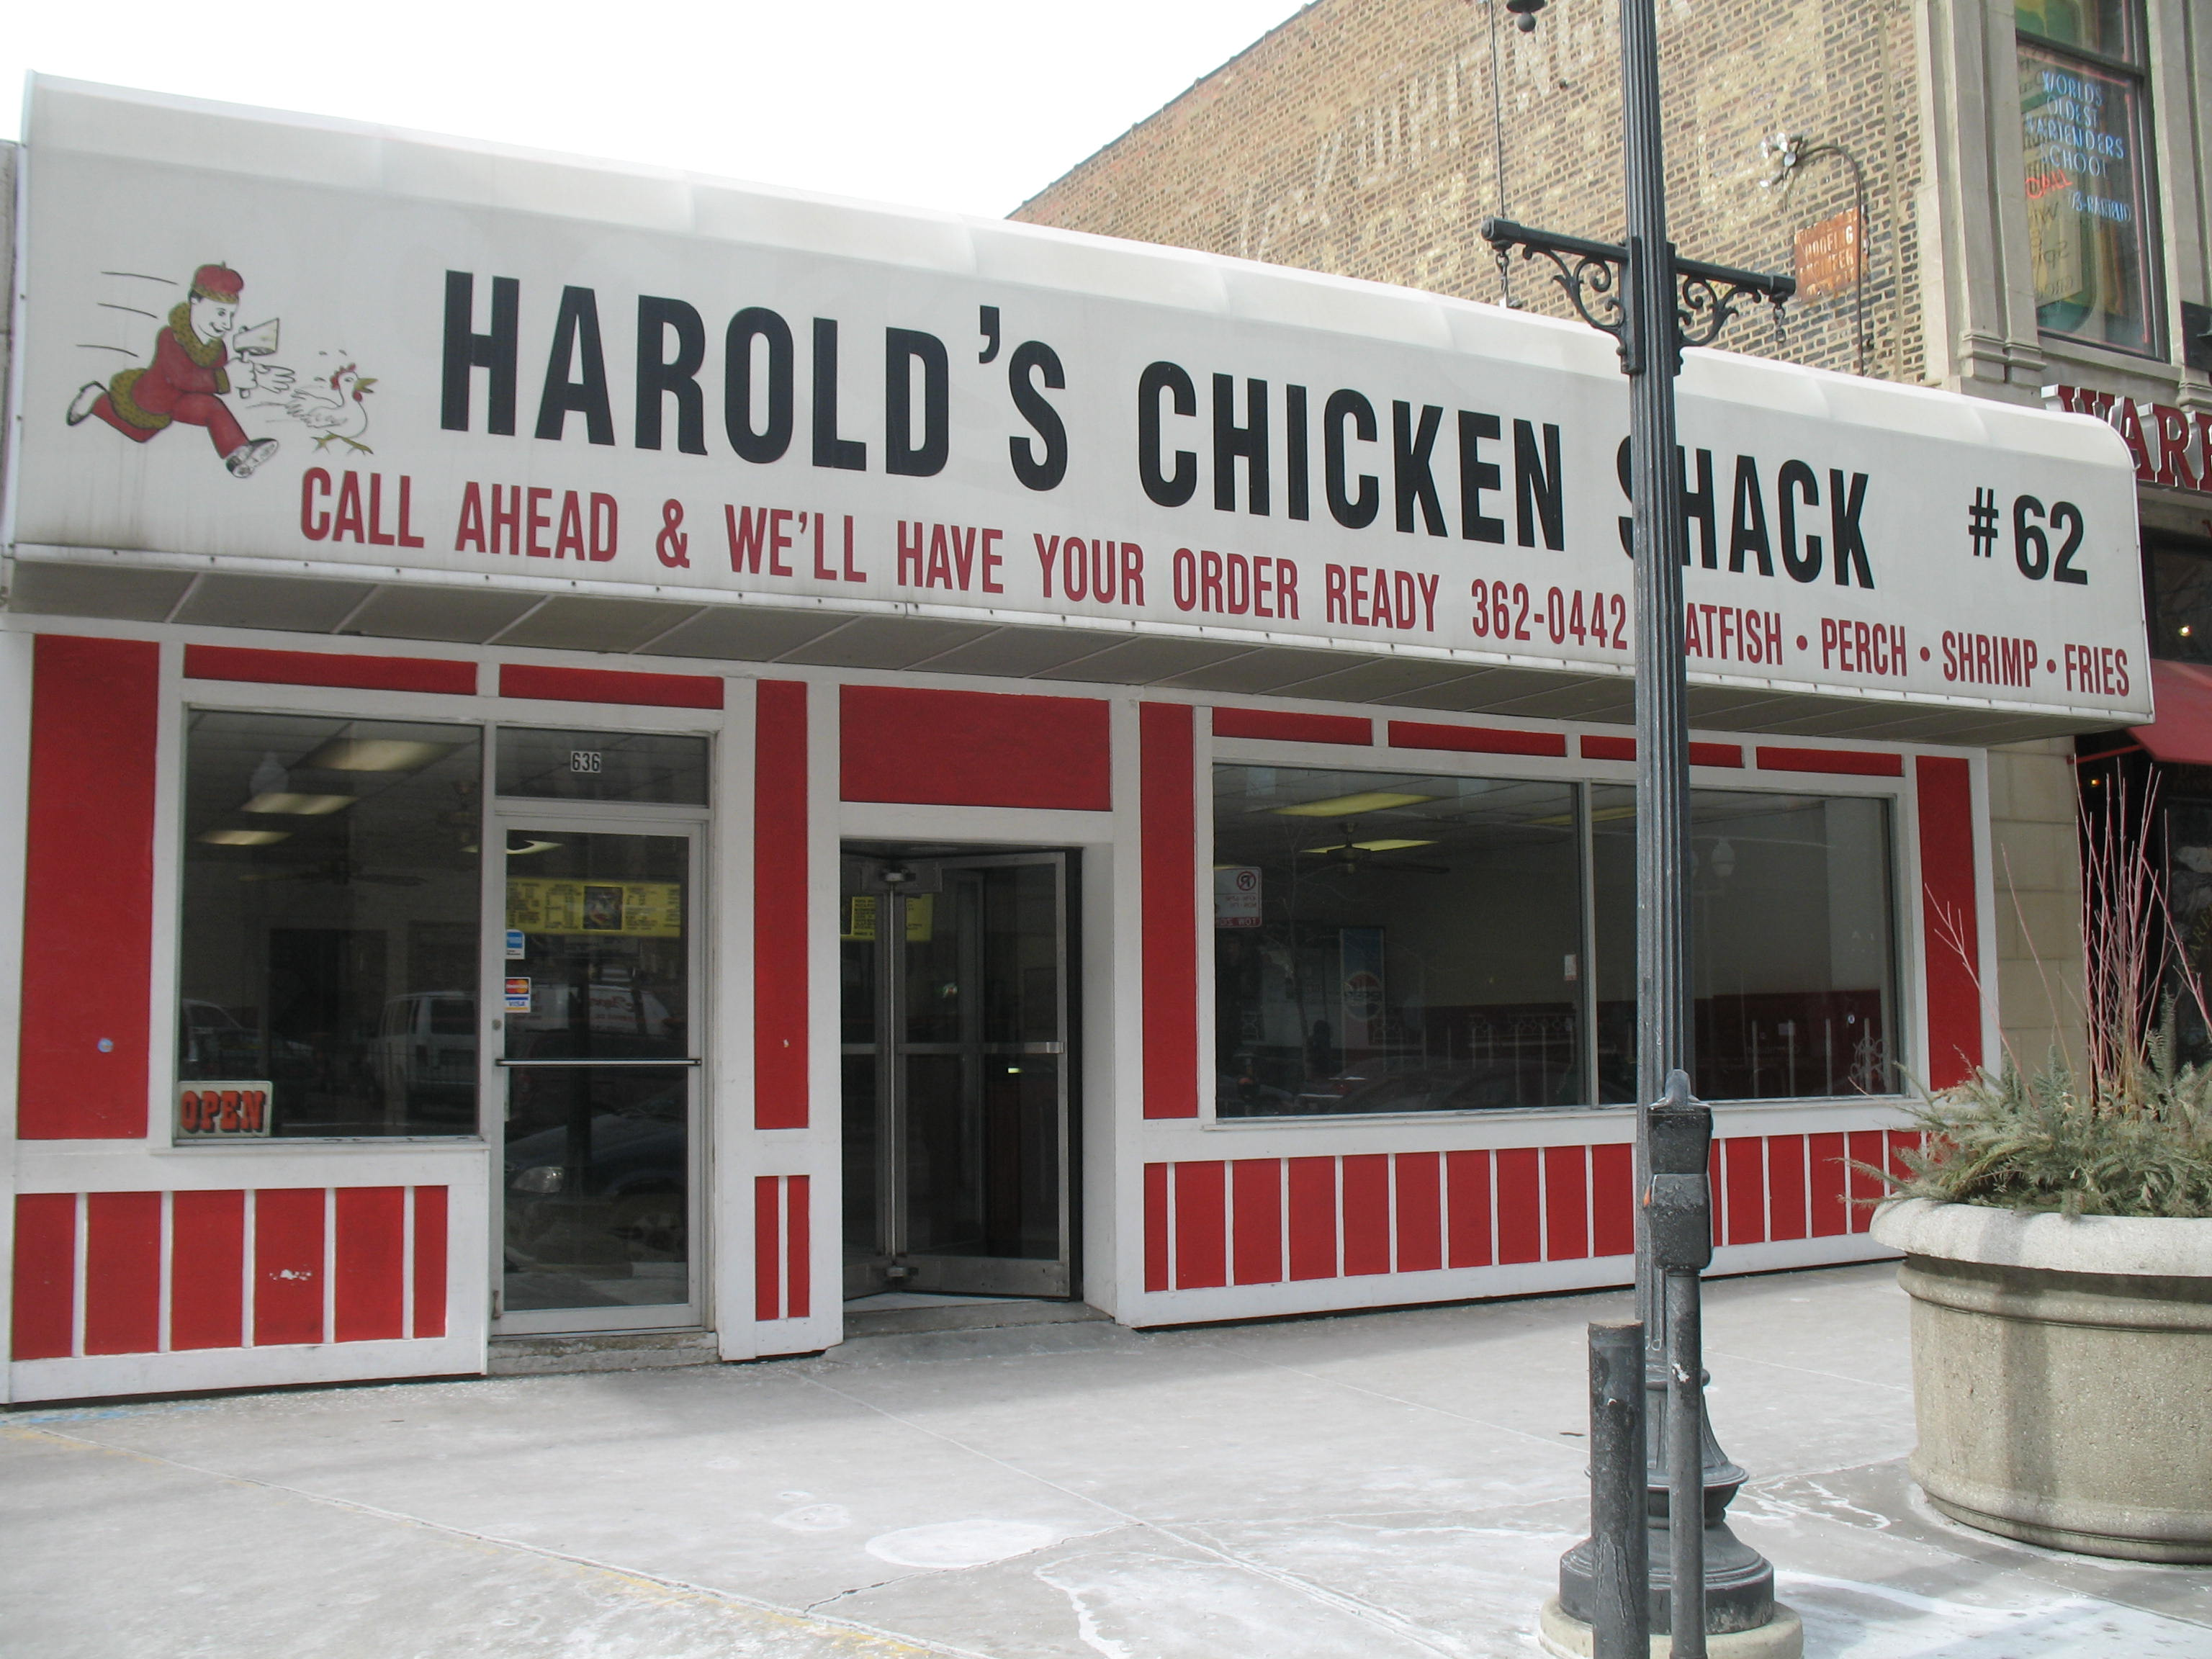 """A restaurant with a red front and a white awning that says """"Harold's Chicken Shack #62"""" with the logo of a man chasing a chicken"""